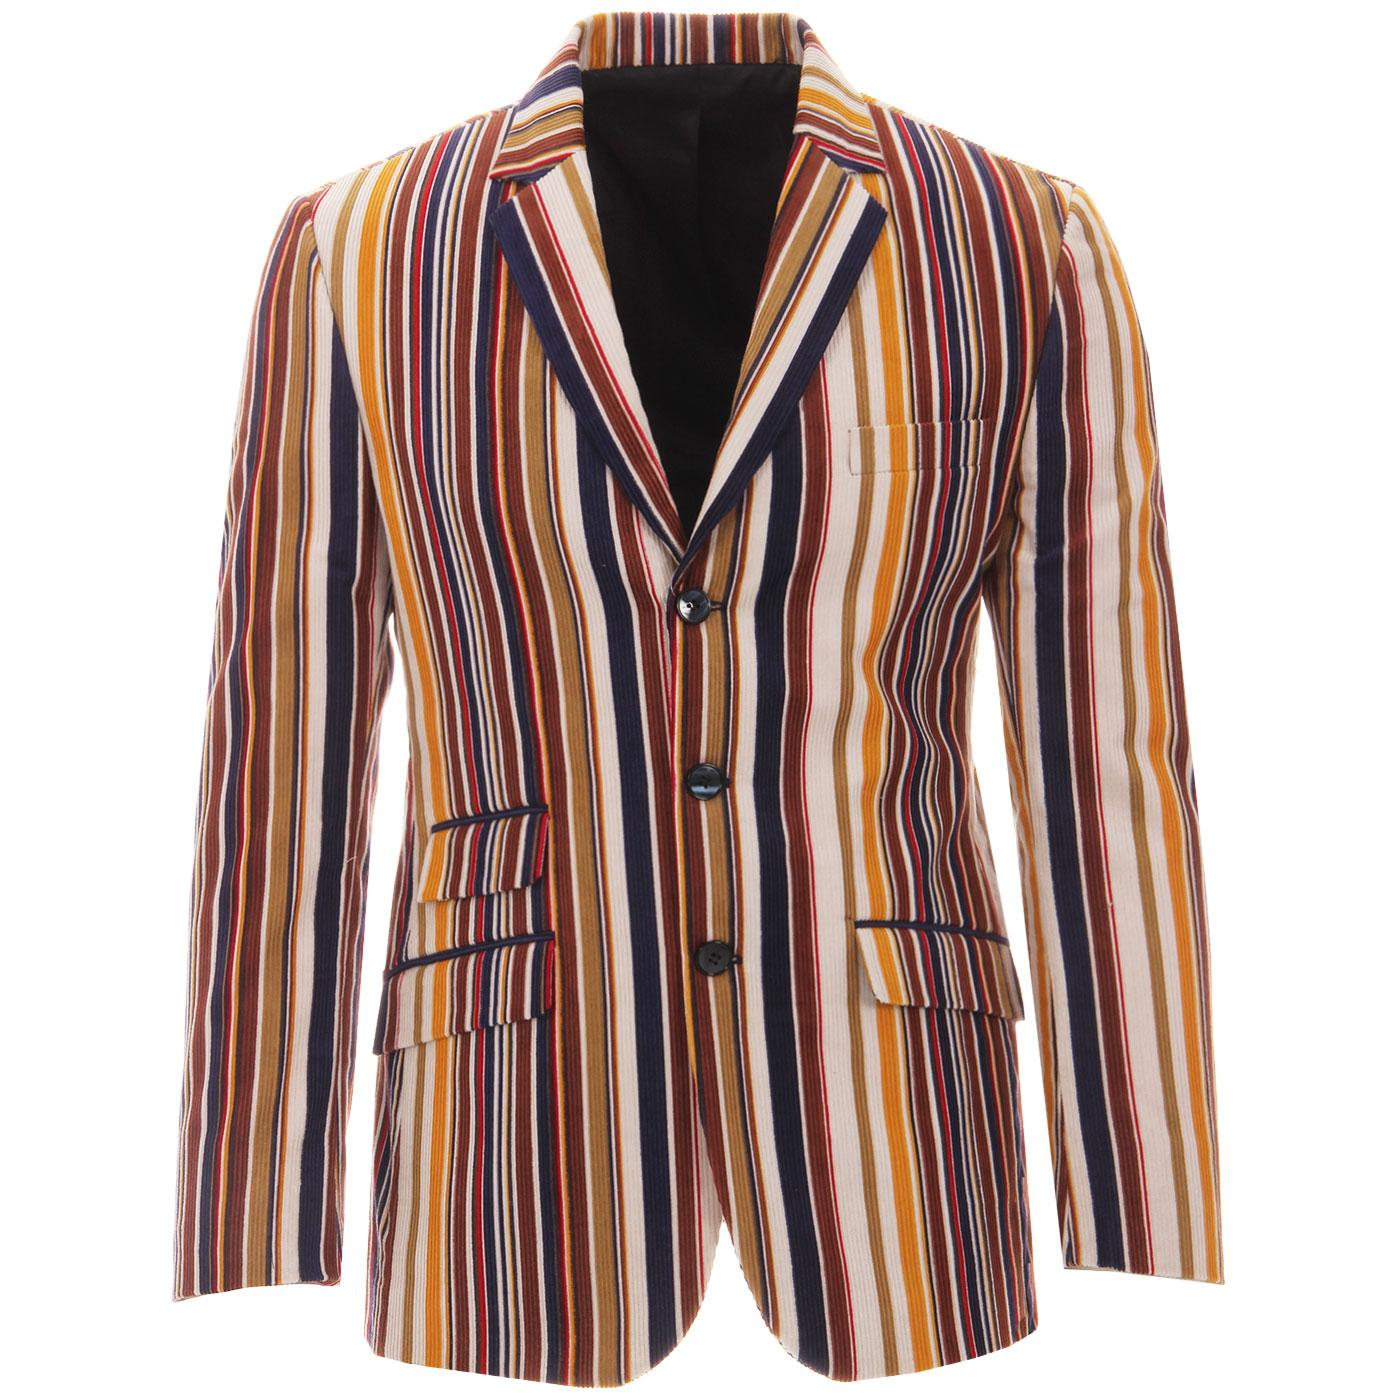 Madcap England Offbeat Cord Stripe 60s Mod Boating Blazer